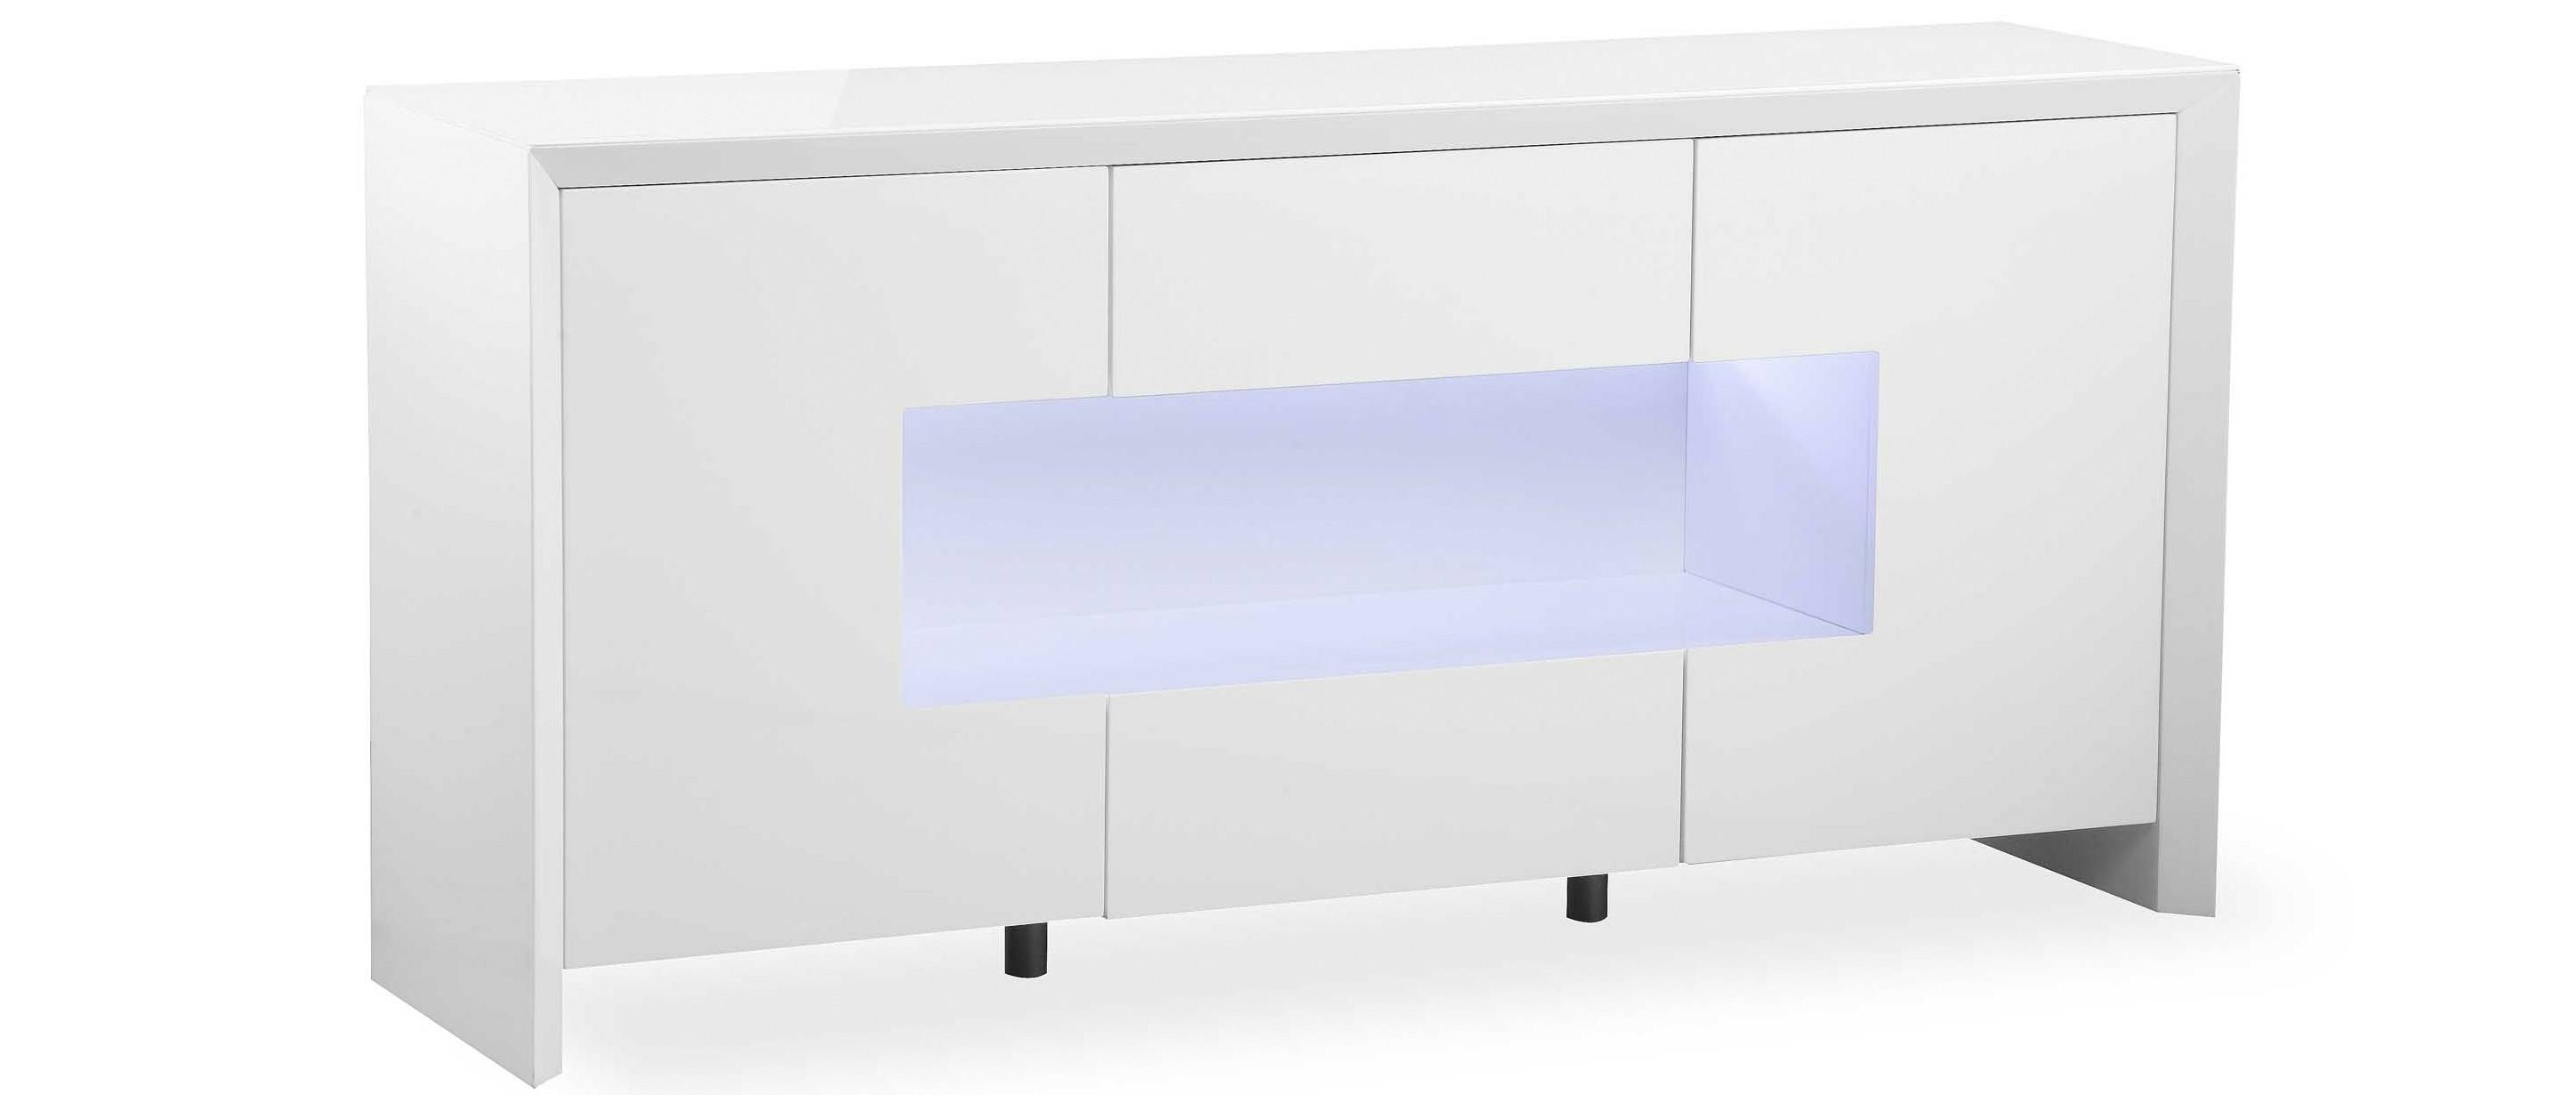 Soho - L.e.d. Display Sideboard - White High Gloss inside White High Gloss Sideboards (Image 25 of 30)